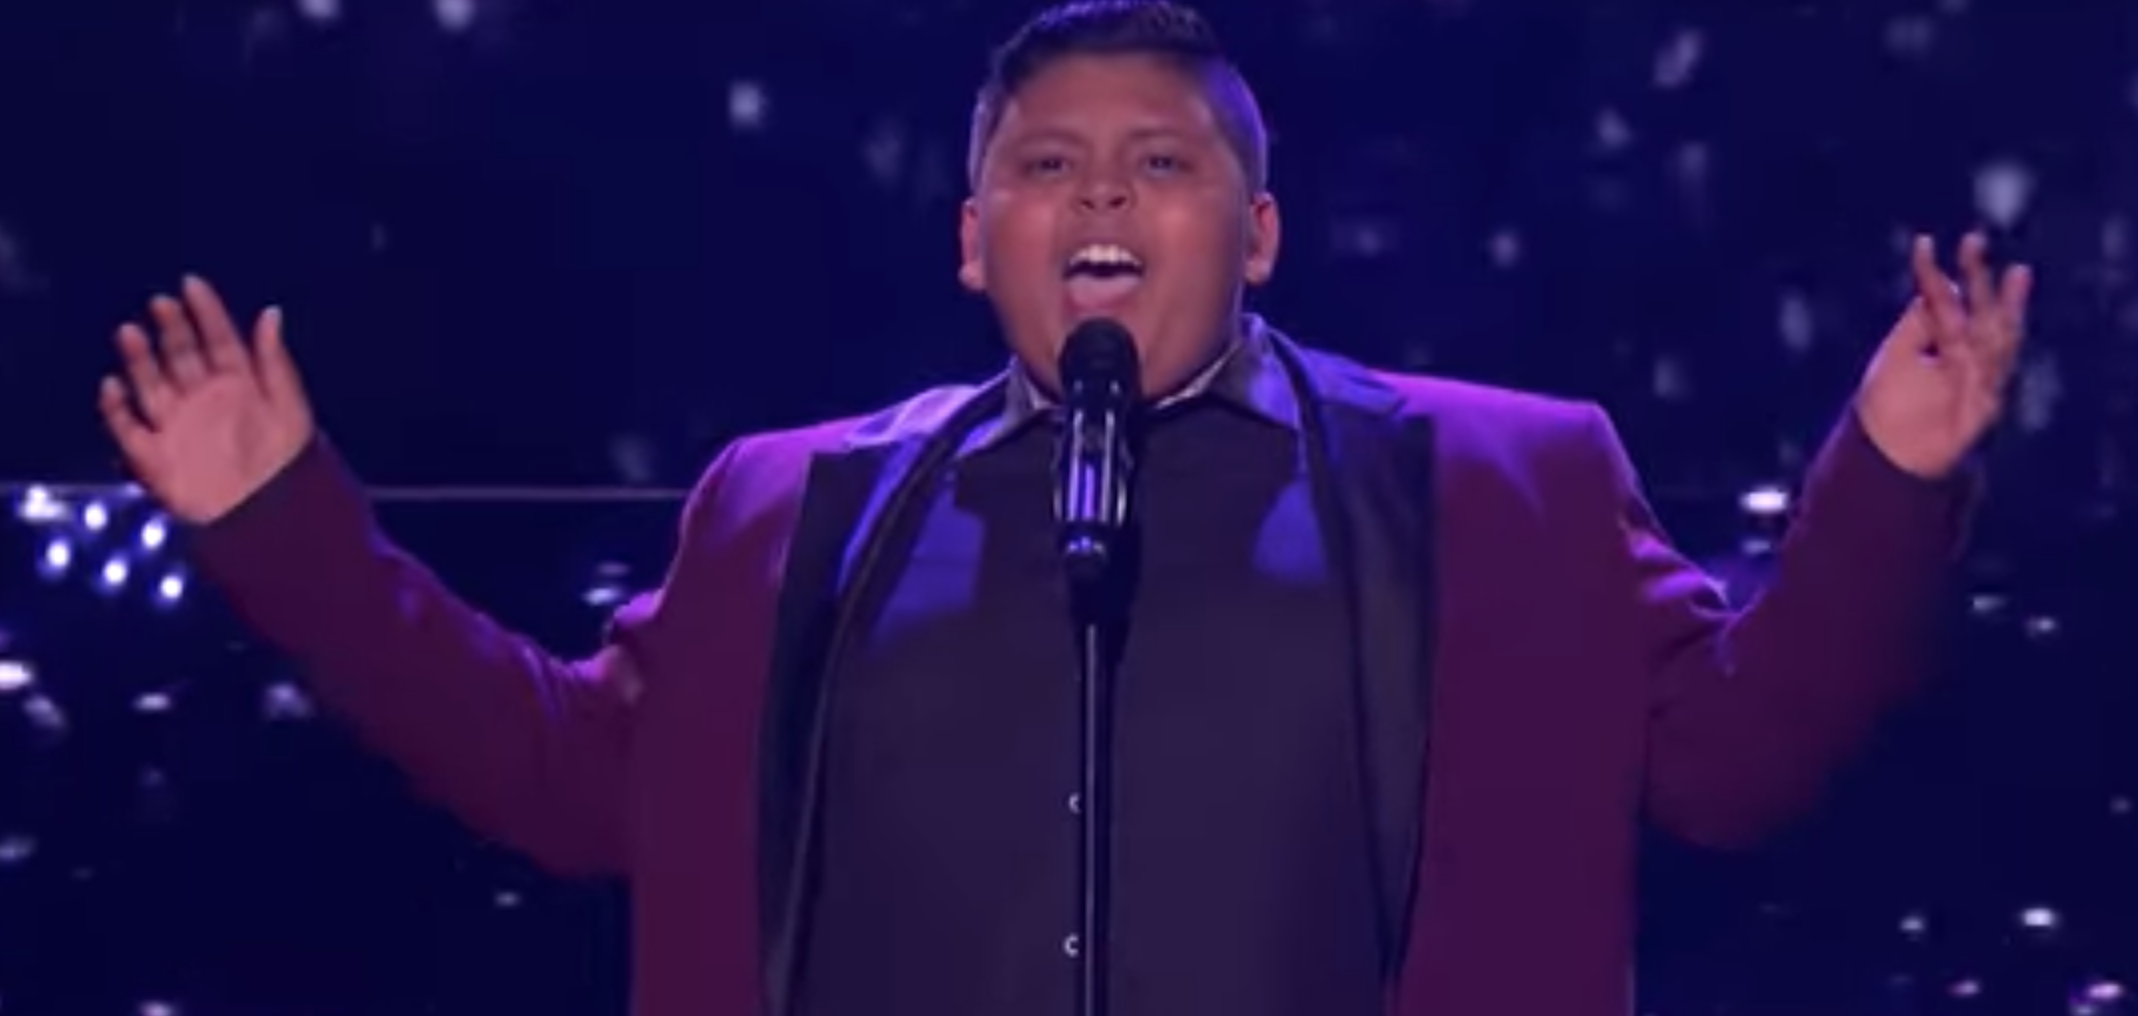 All the 'America's Got Talent' Results Spoilers You Could Ever Want